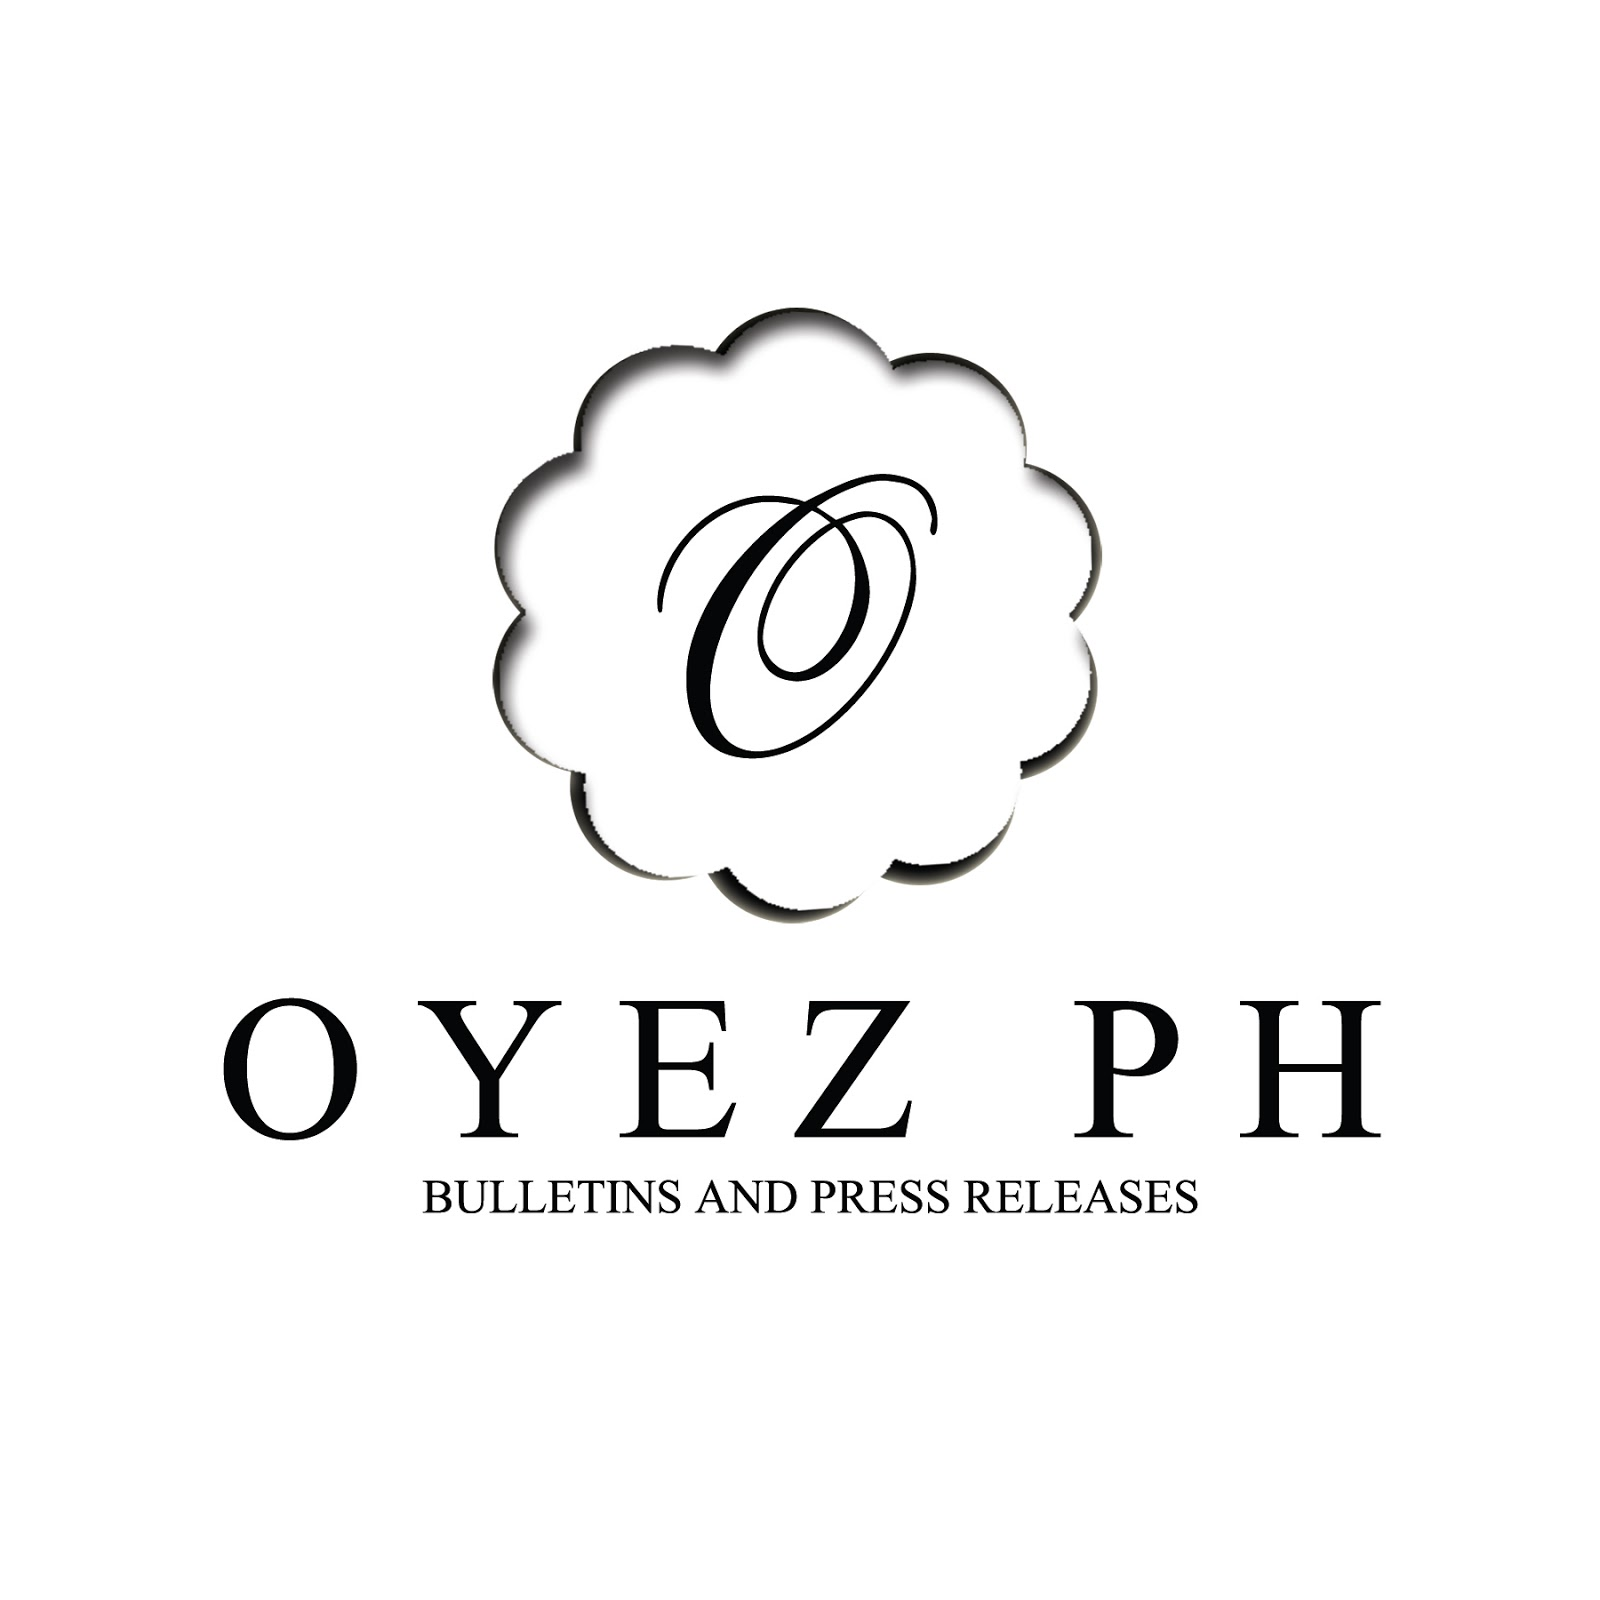 About OYEZ PH